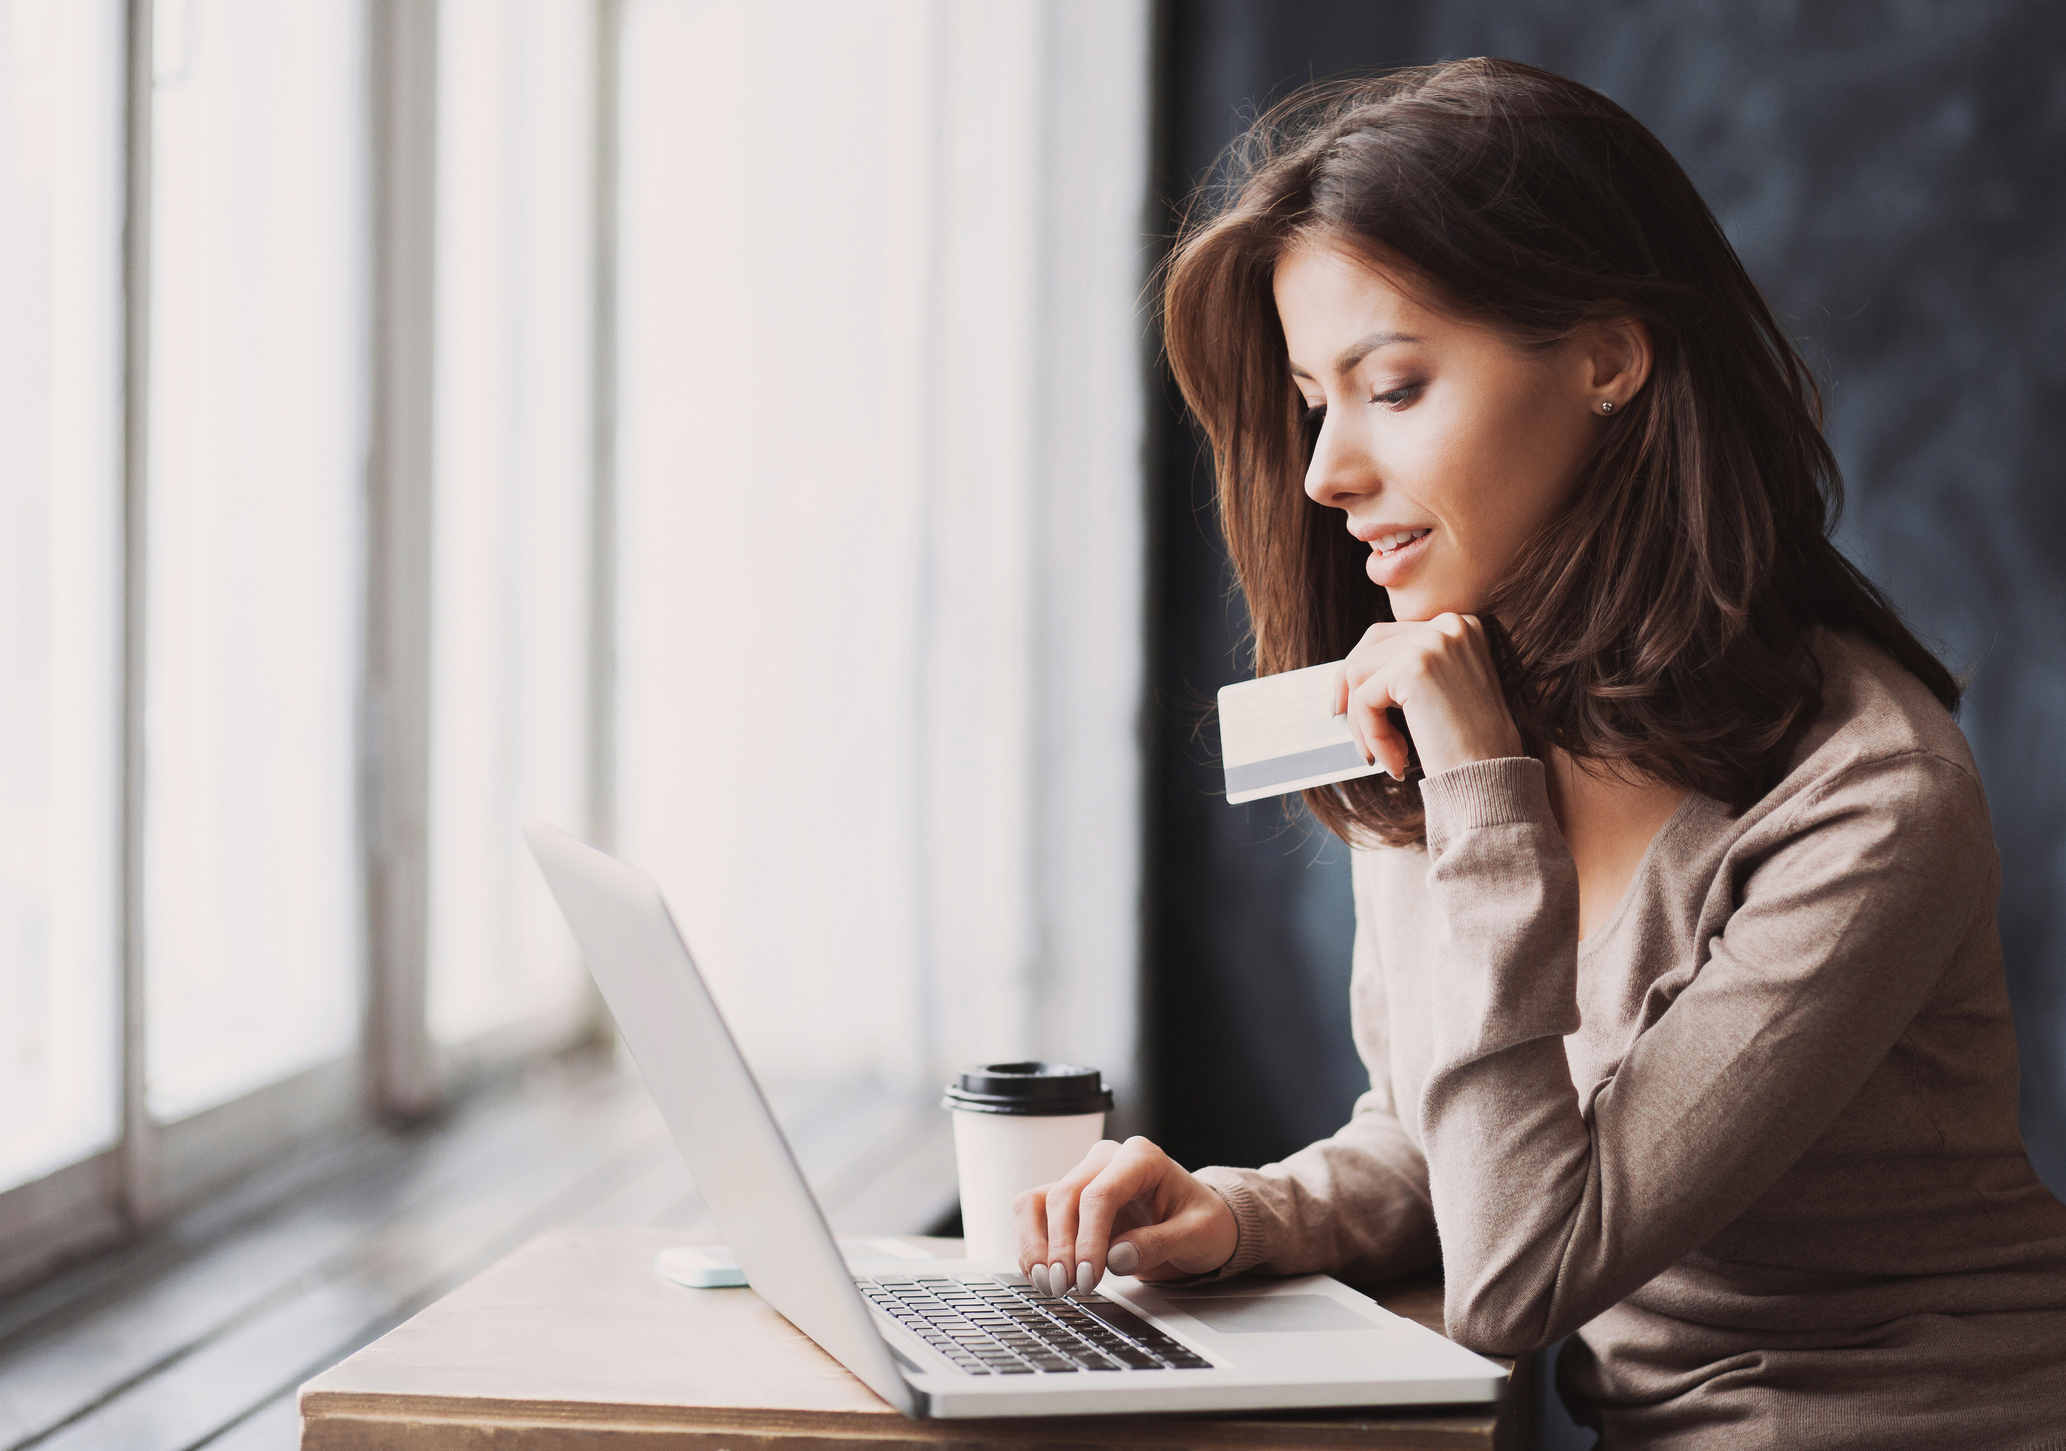 A woman using a laptop and holding a credit card.